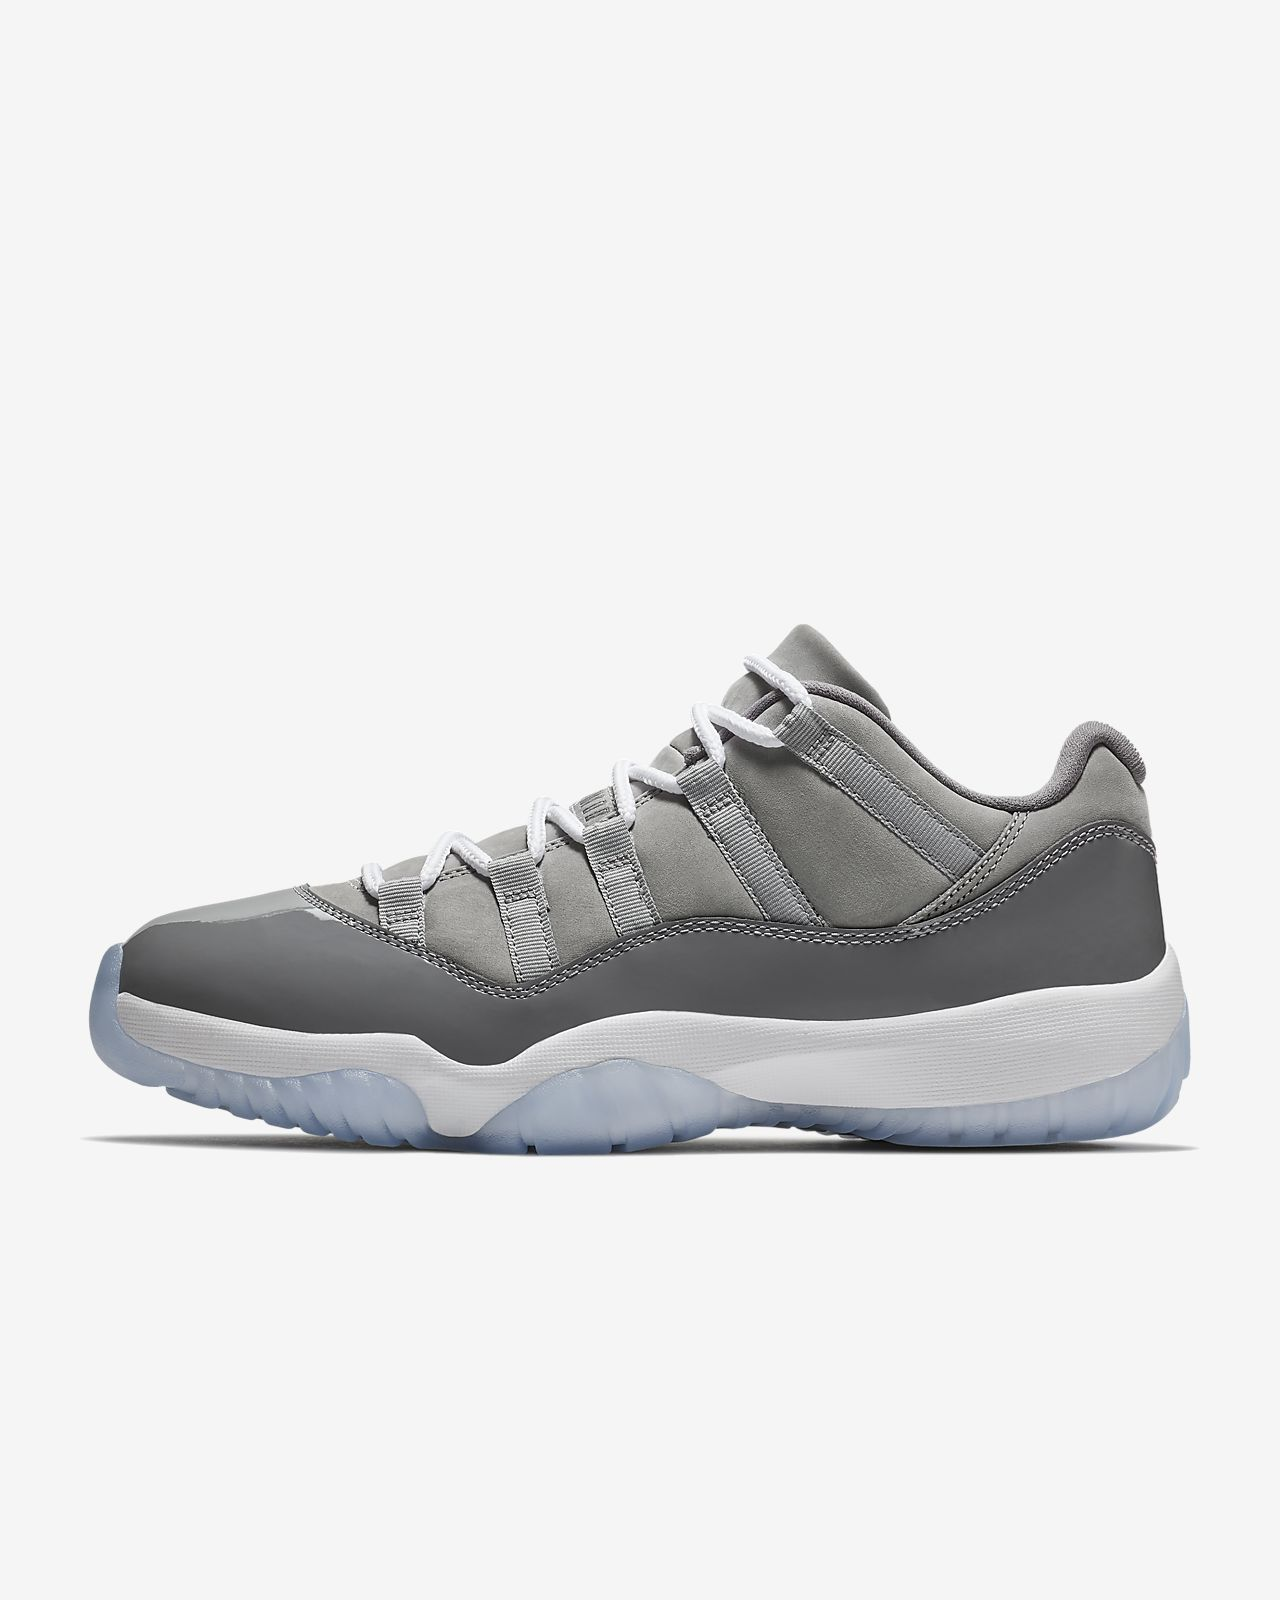 67194a3ef5b3 Air Jordan 11 Retro Low Men s Shoe. Nike.com ID